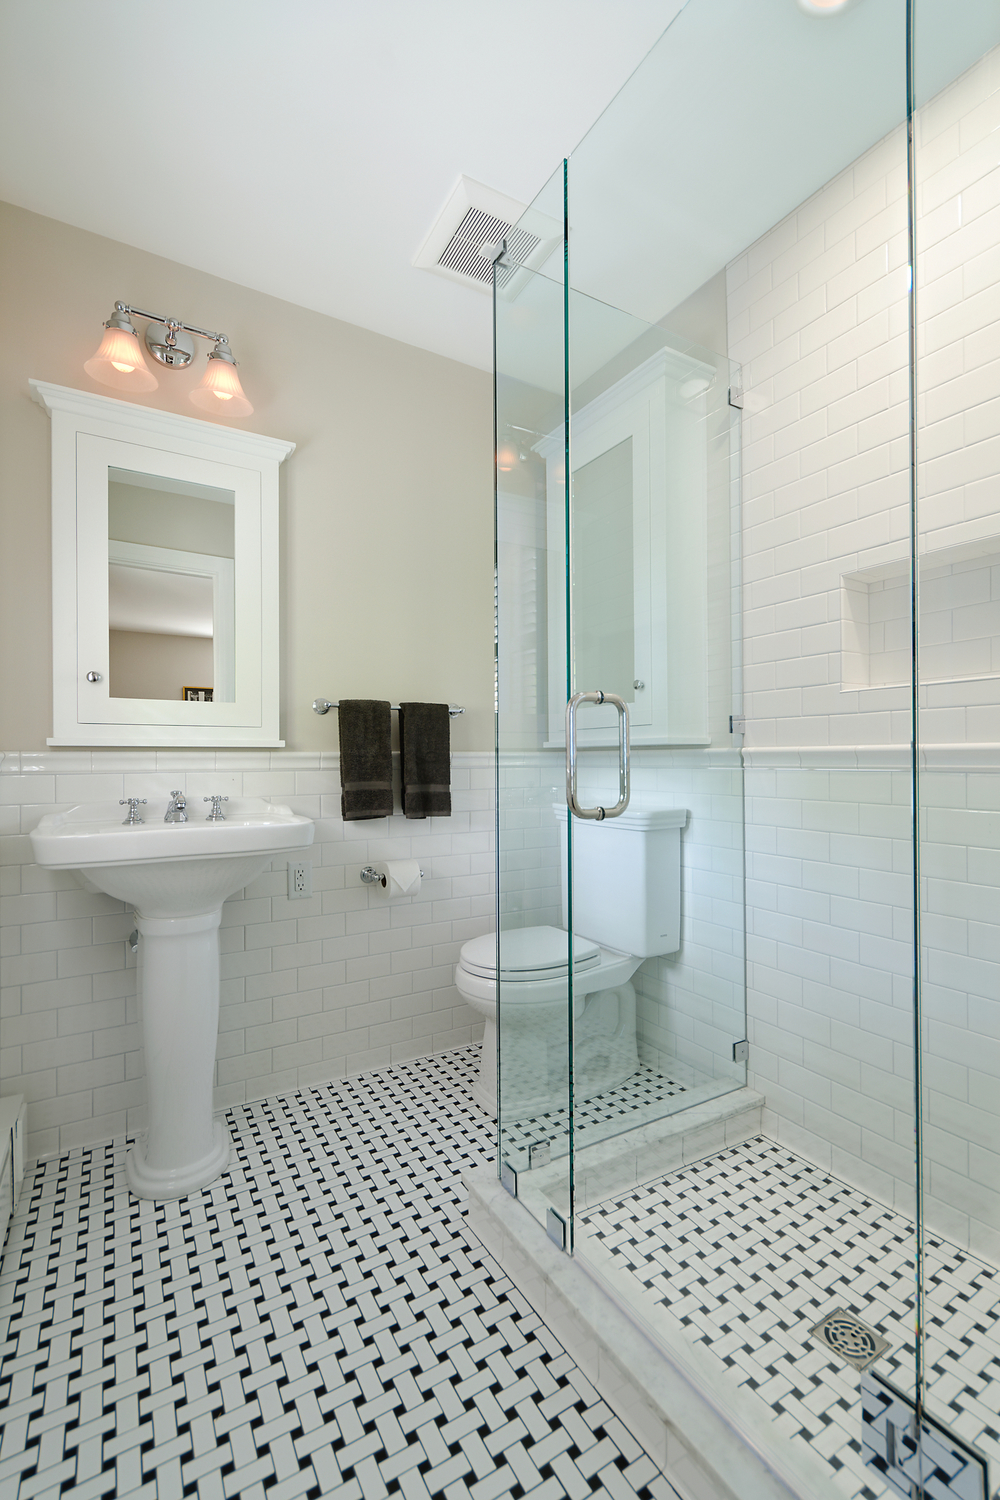 Coty Award Winning Bathroom Haines Construction Llc